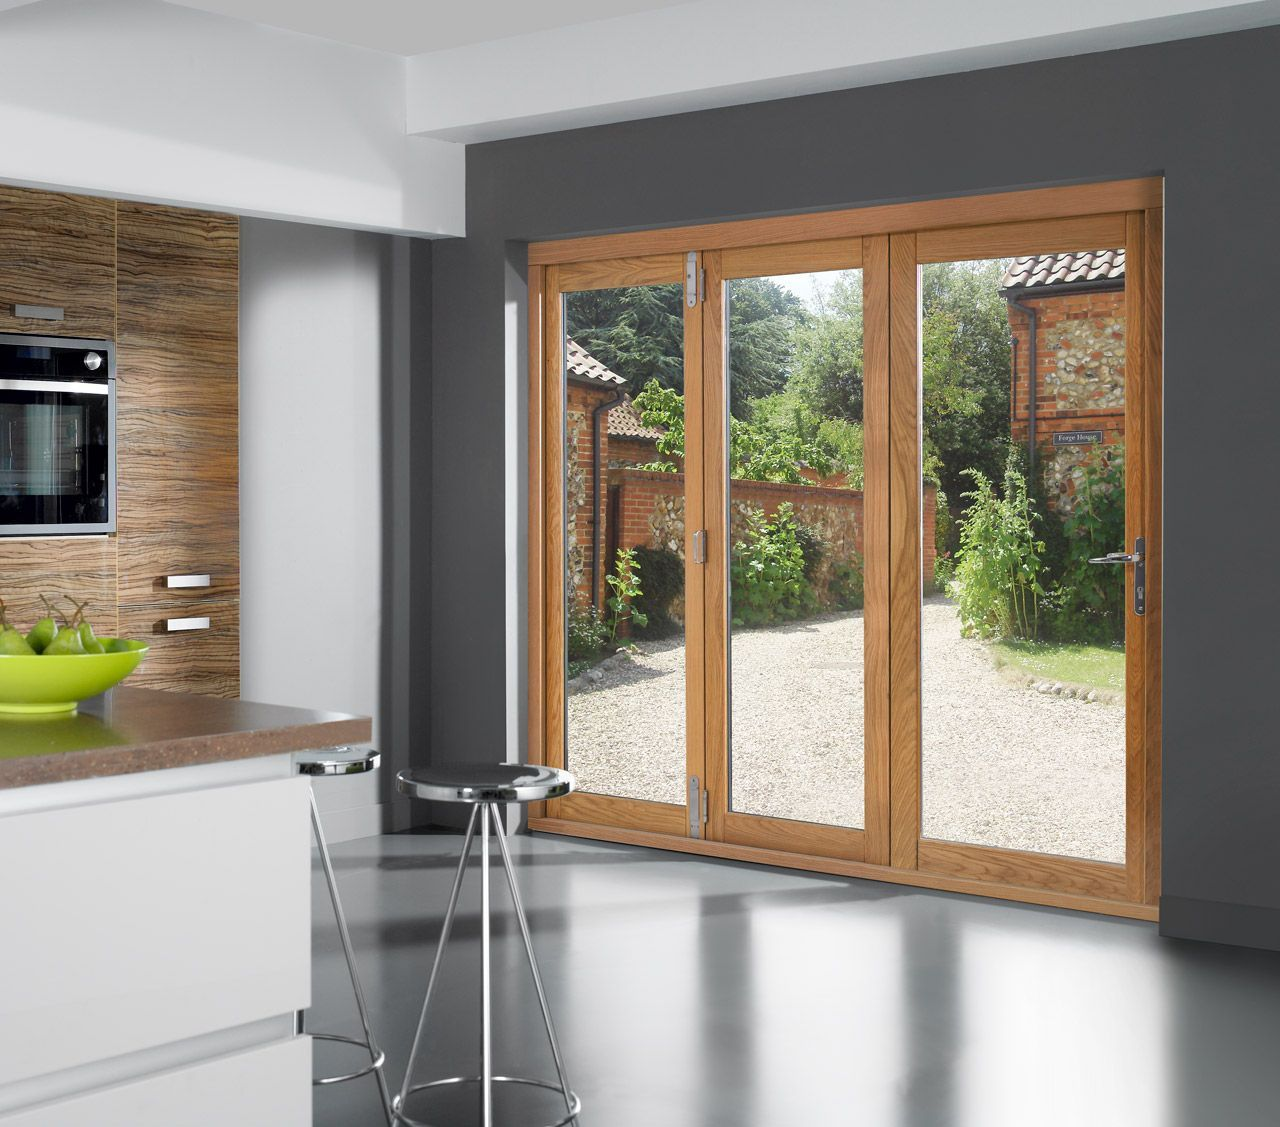 6ft Folding Sliding External Patio Doors Bifold Patio Doors Folding Patio Doors Hinged Patio Doors